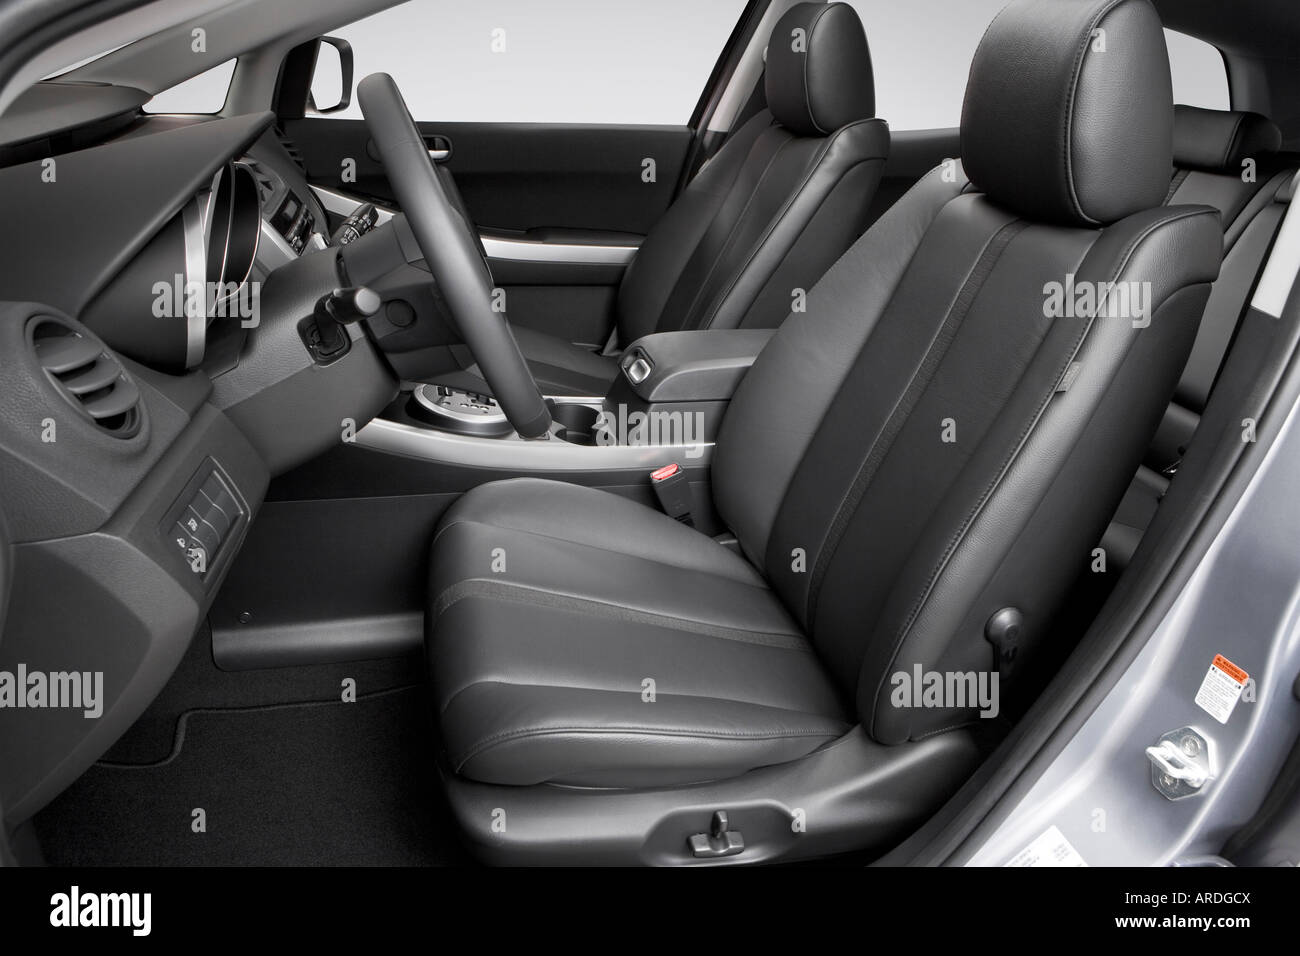 2007 mazda cx-7 grand touring in gray - front seats stock photo